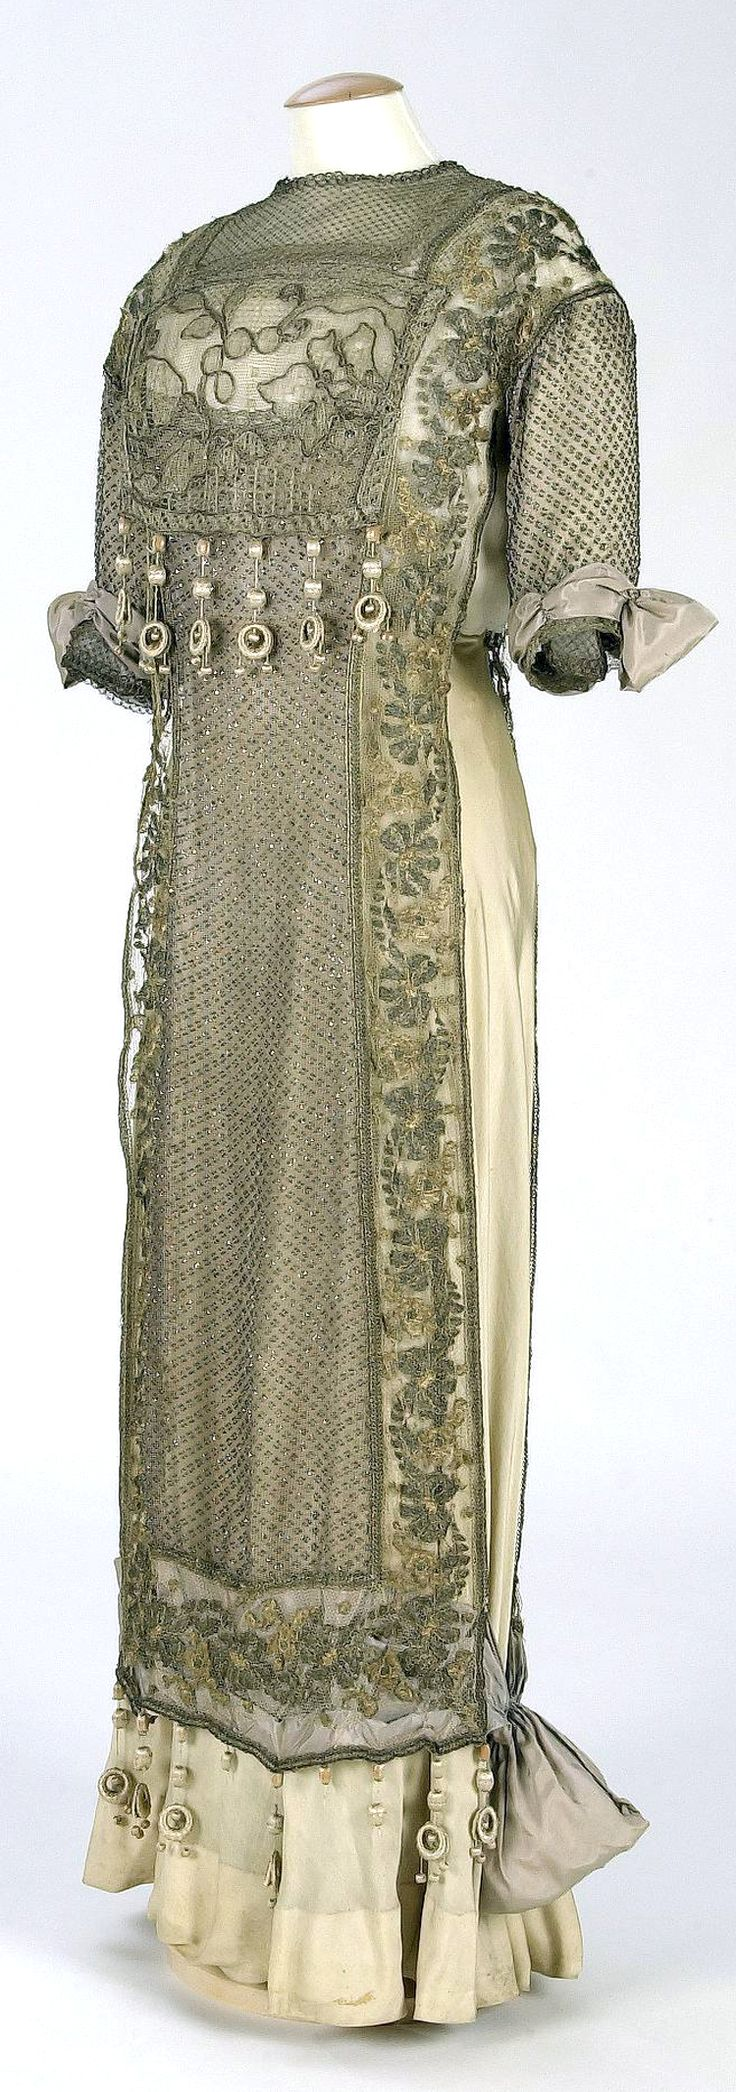 1910-1919 Day dress by Renaud & Cie, Barcelona. Cream-colored silk organza over silk satin with tunic overlay of tulle embroidered with beads and applications of metallic lace. Boned bodice. Textile Museum & Documentation Center, Terrassa, Spain. (IMATEX)